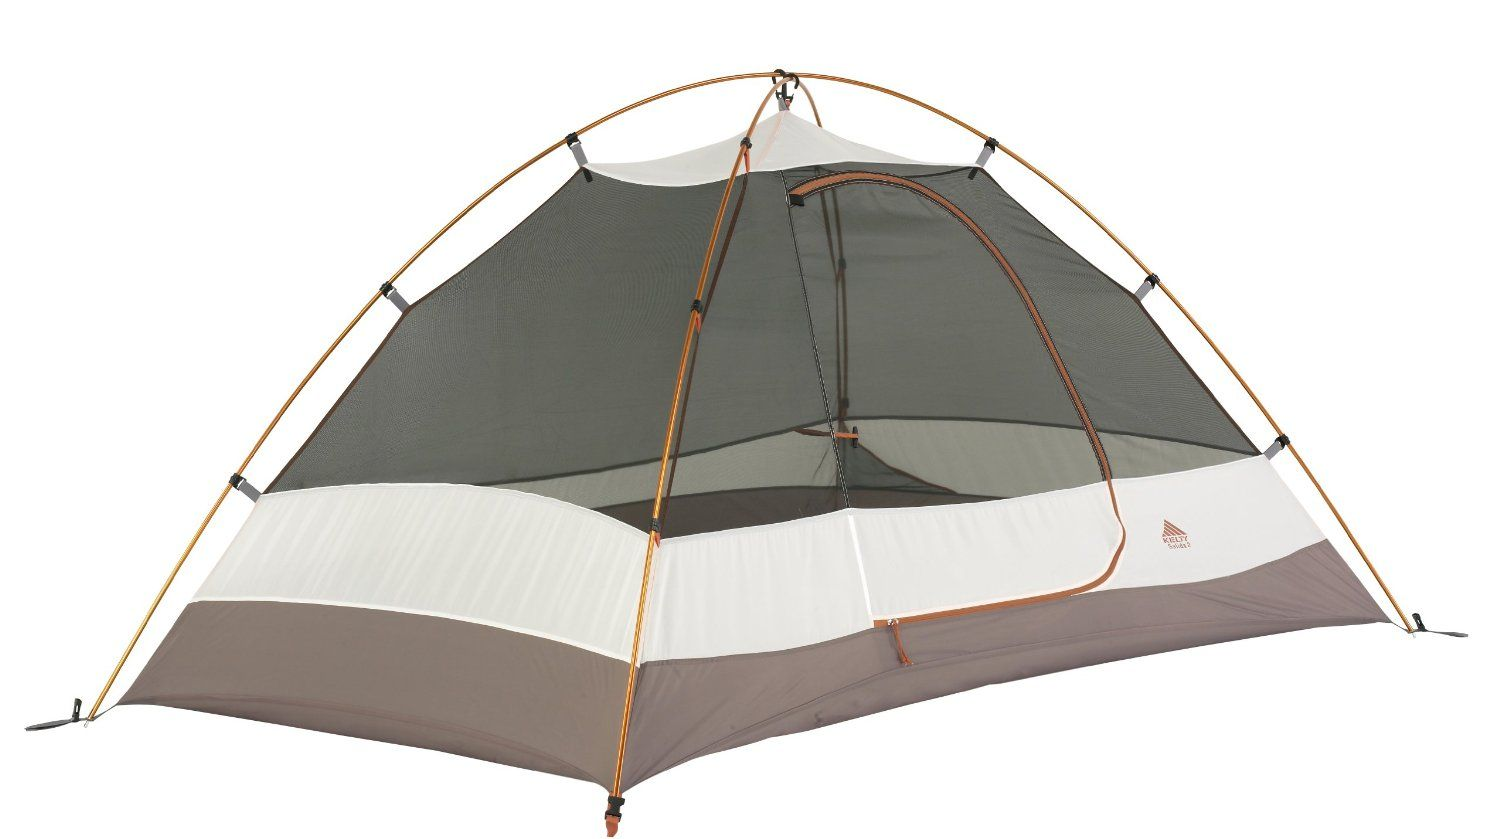 ALPS Mountaineering Vertex 4 Backpacking Tent Review | Best Backpacking Tents | Best Backpacking Tents Guide | Pinterest | Tent reviews and Tents  sc 1 st  Pinterest & ALPS Mountaineering Vertex 4 Backpacking Tent Review | Best ...